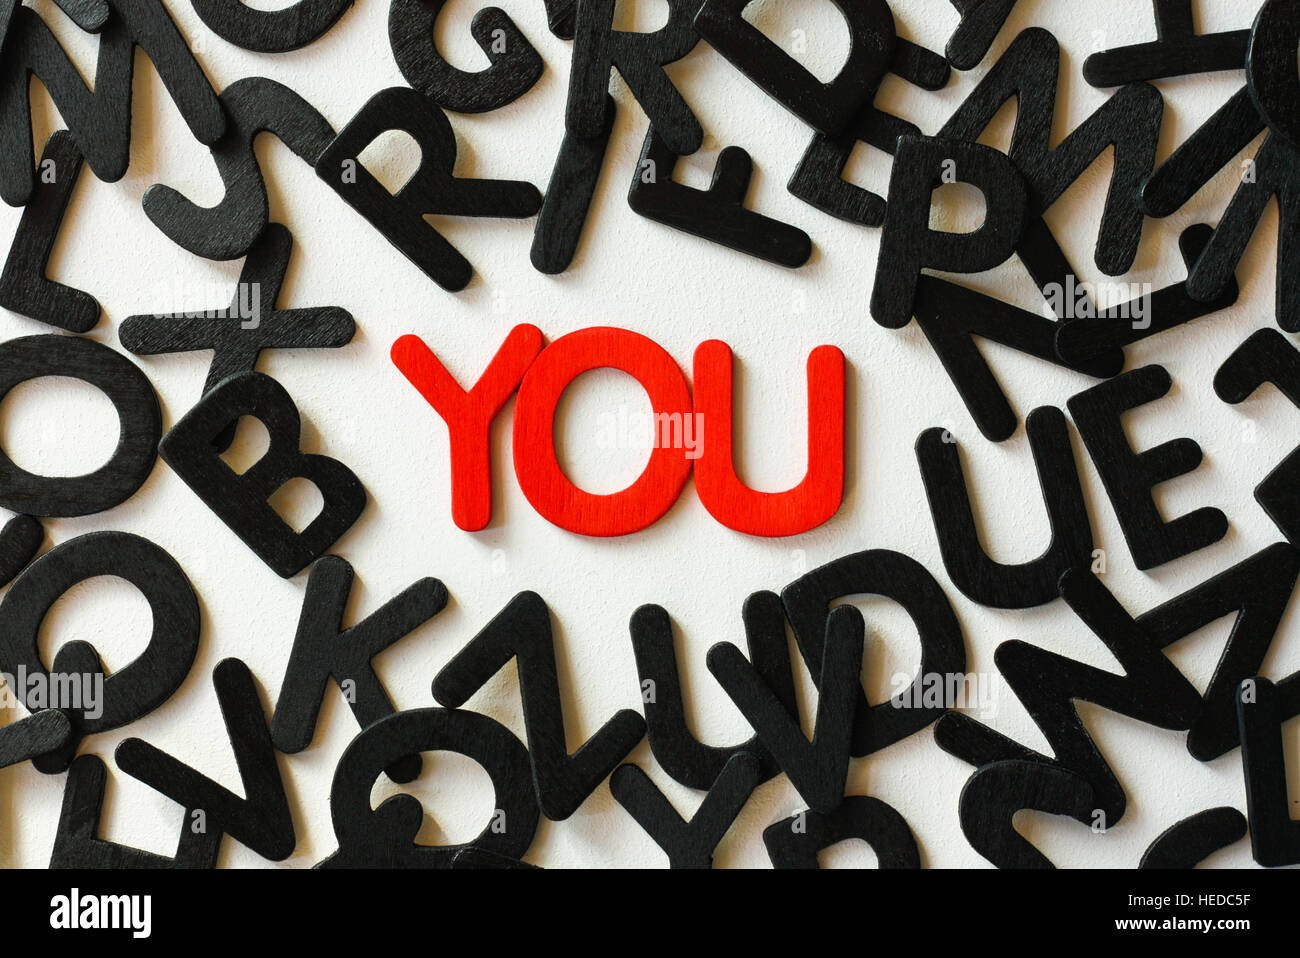 Red letters spelling the word you to illustrate the concept of the self and personal identity. - Stock Image